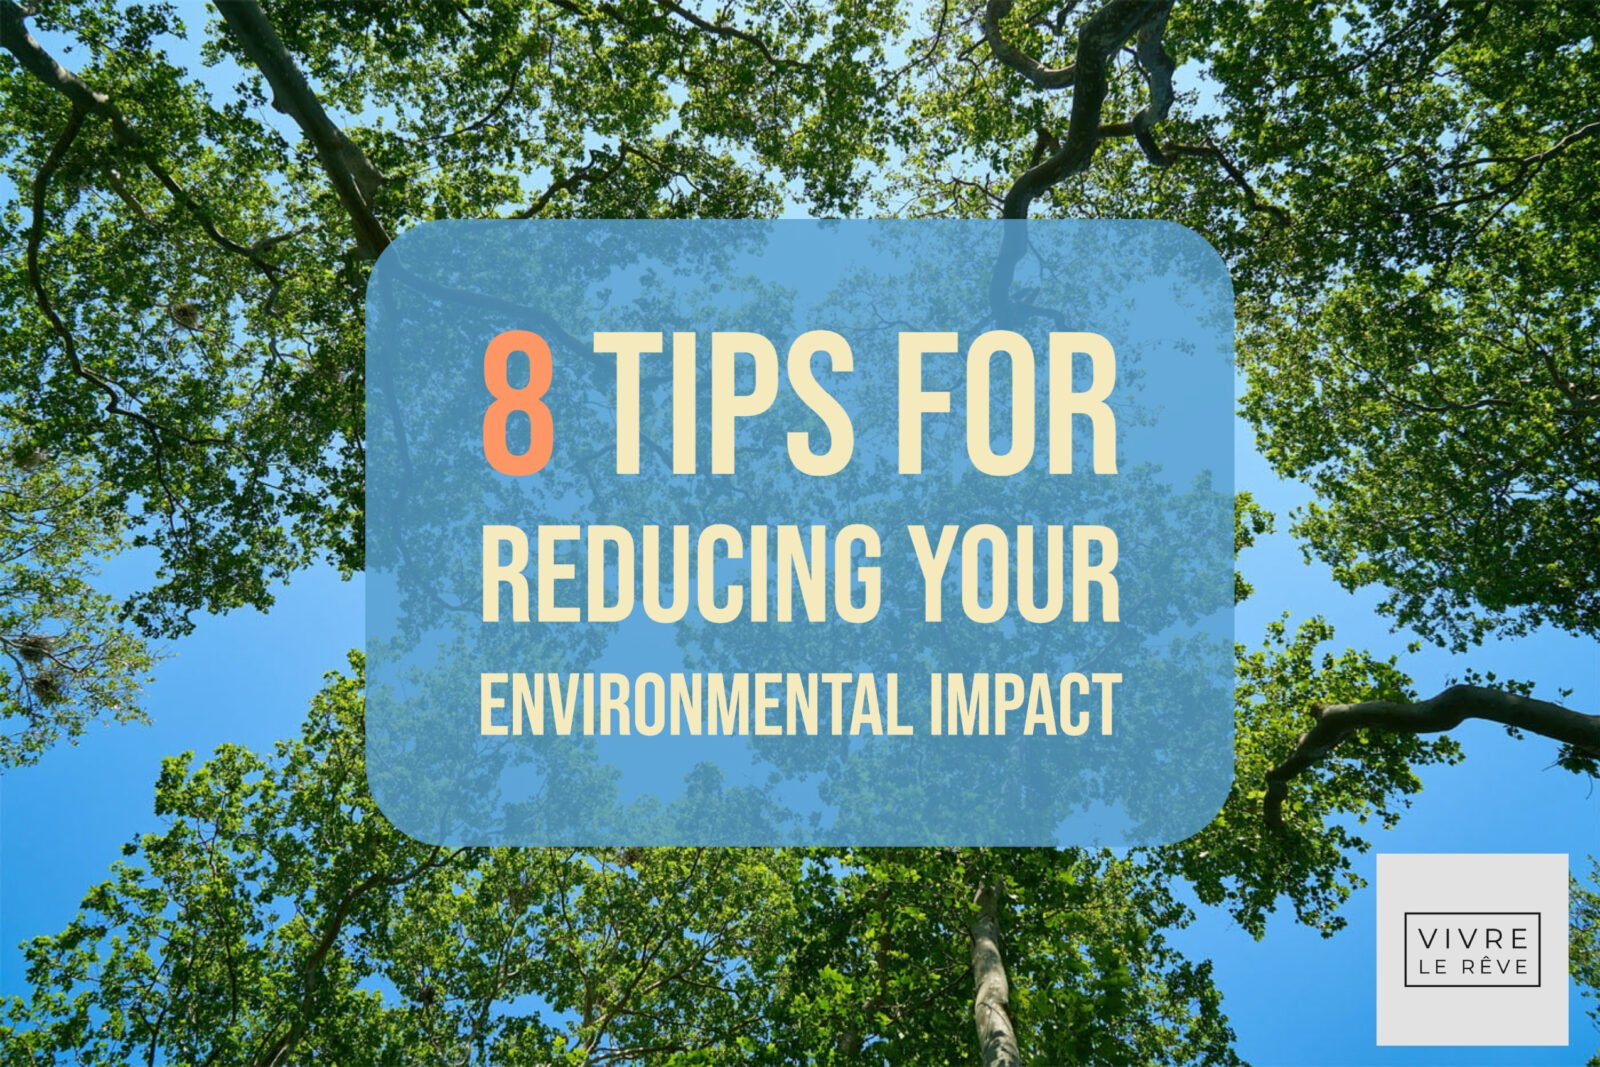 8 Tips for Reducing Your Environmental Impact